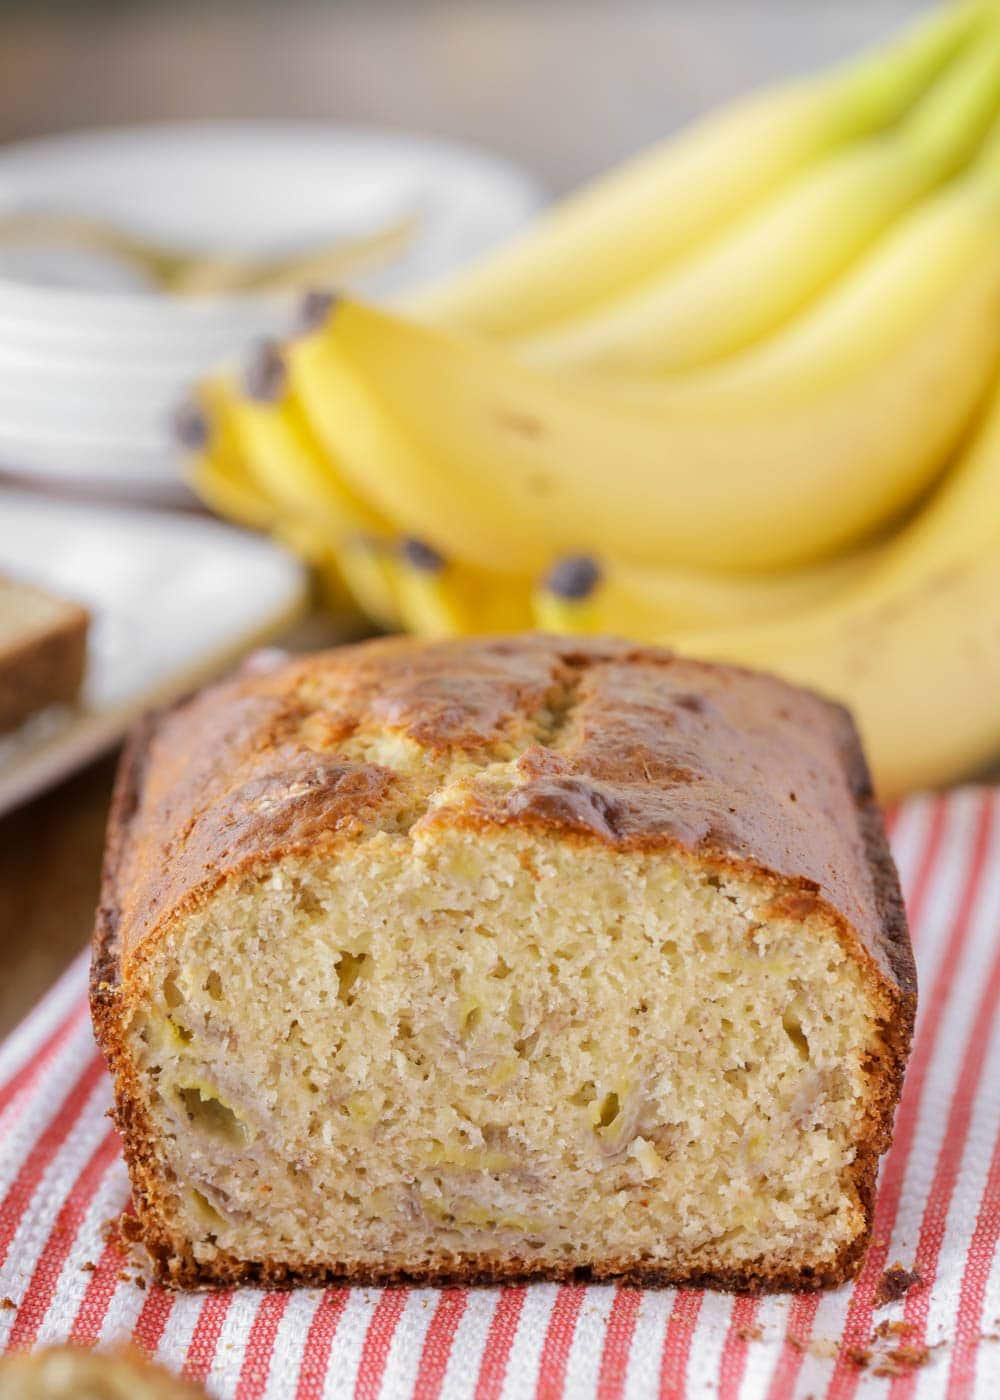 Banana bread made with bisquick